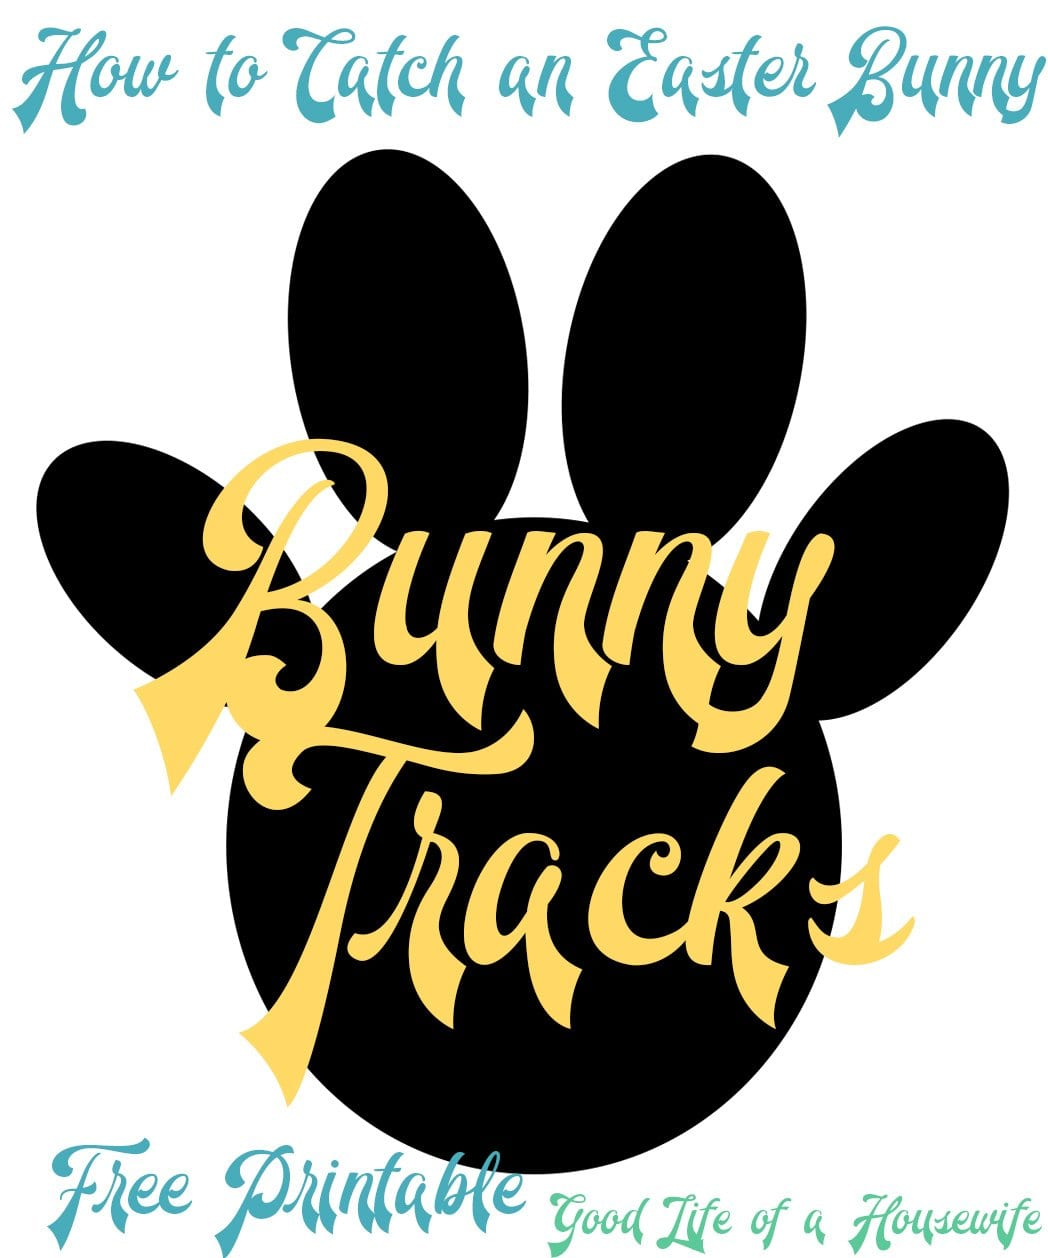 Easter Bunny Tracks. How to Catch an Easter Bunny | Good Life of a Housewife | www.goodlifeofahousewife.com